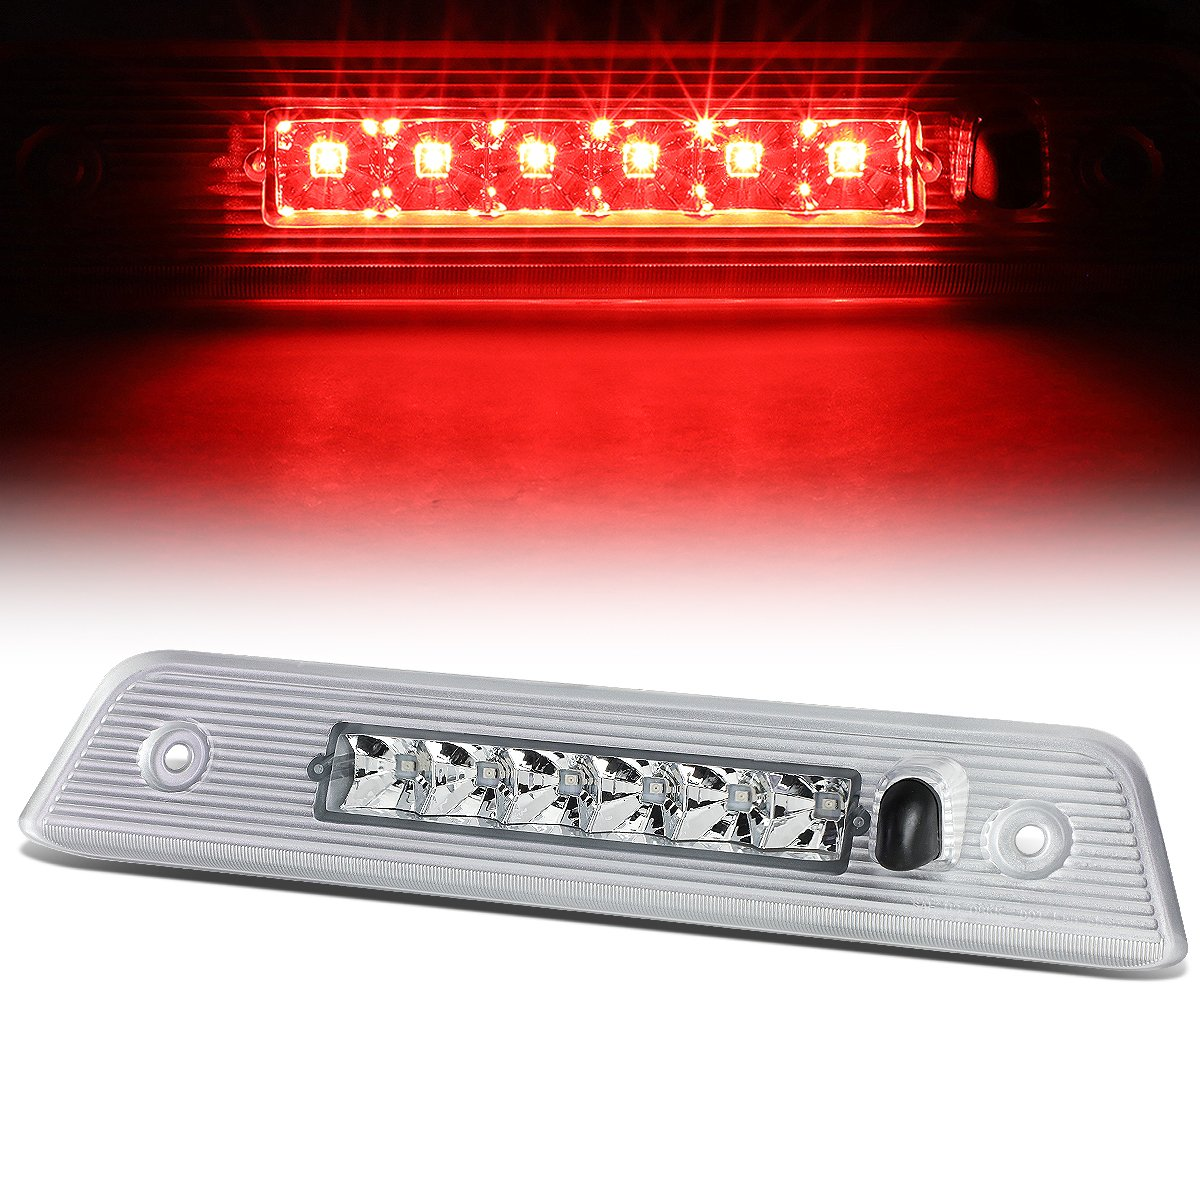 For Jeep Liberty KK Rear Hight Mount LED 3rd Third Brake Light (Red Lens) Auto Dynasty